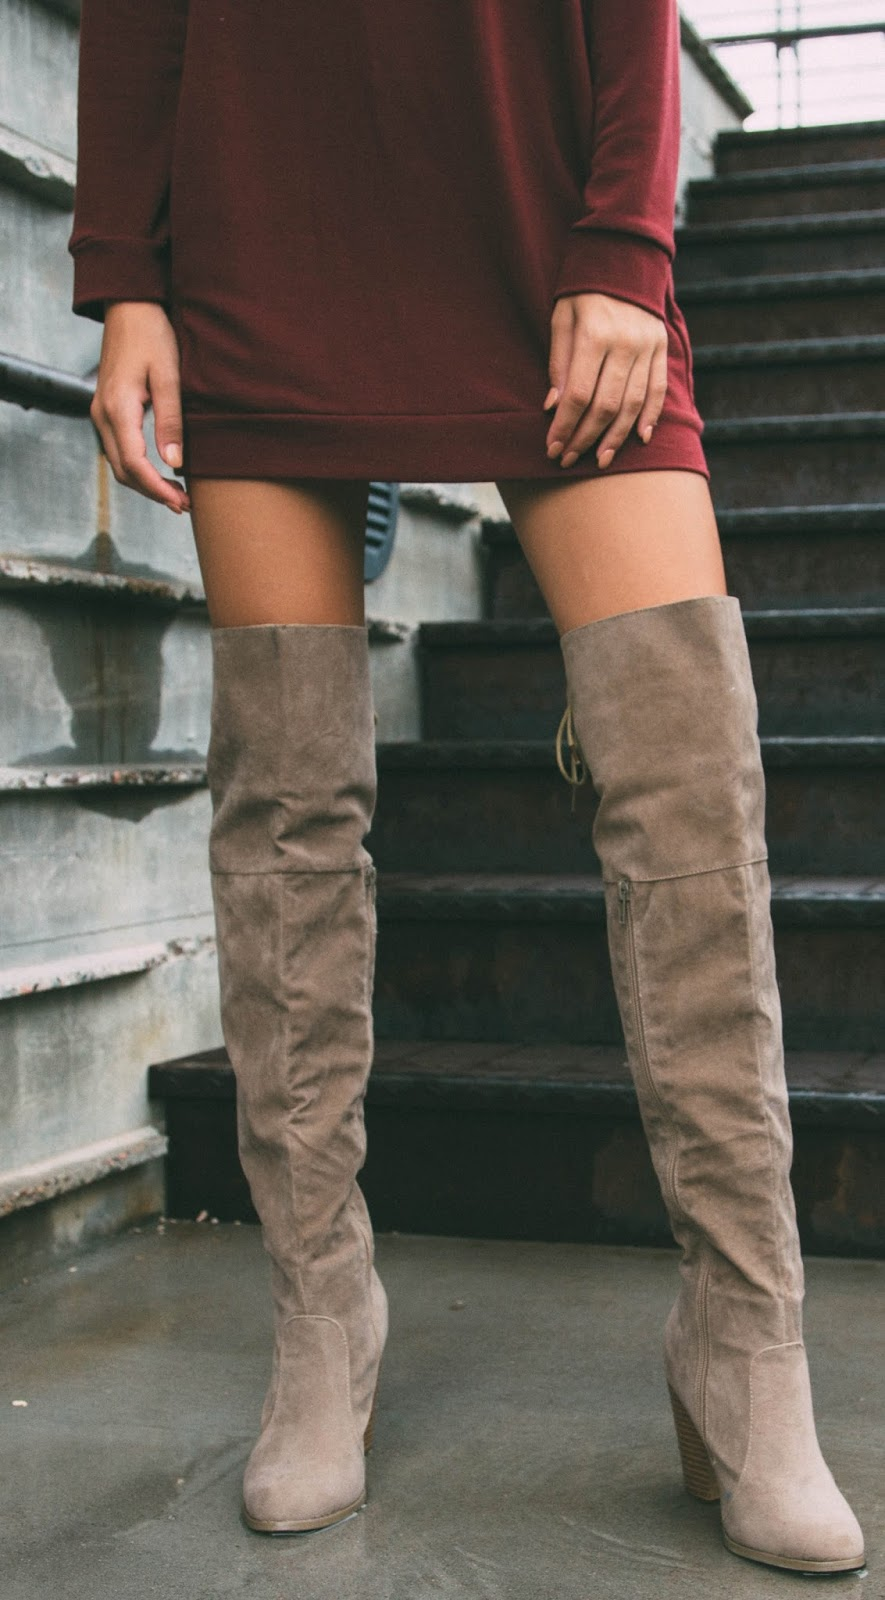 long sweatshirt + nude over the knee boots